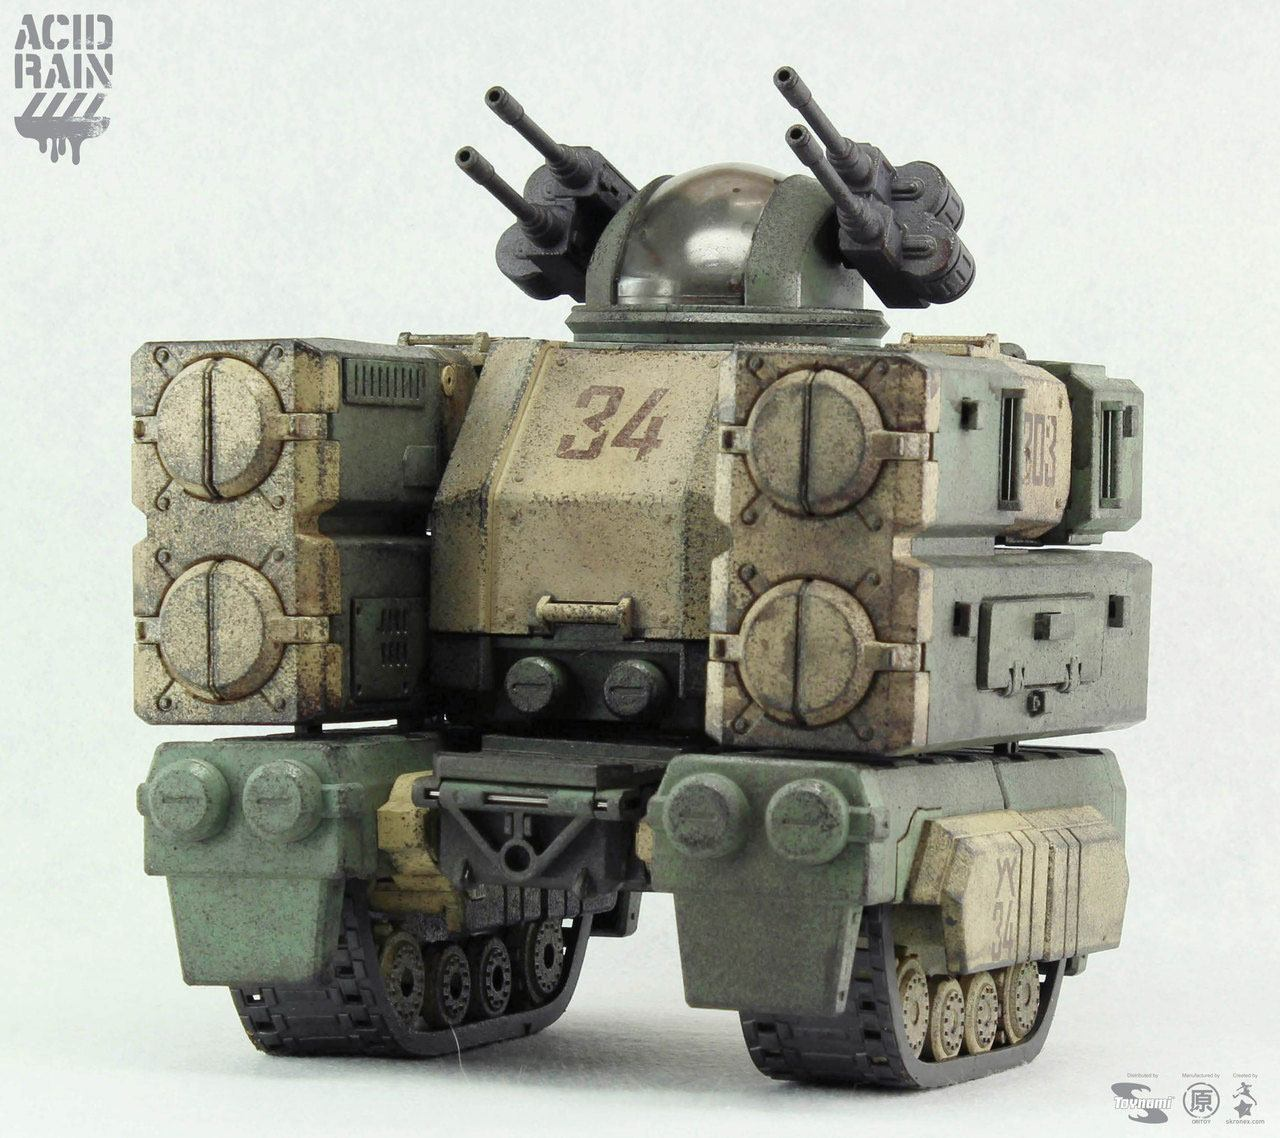 Acid Rain Transforming Mecha Action Vehicle 1/18 Stronghold (Marine) 26 cm